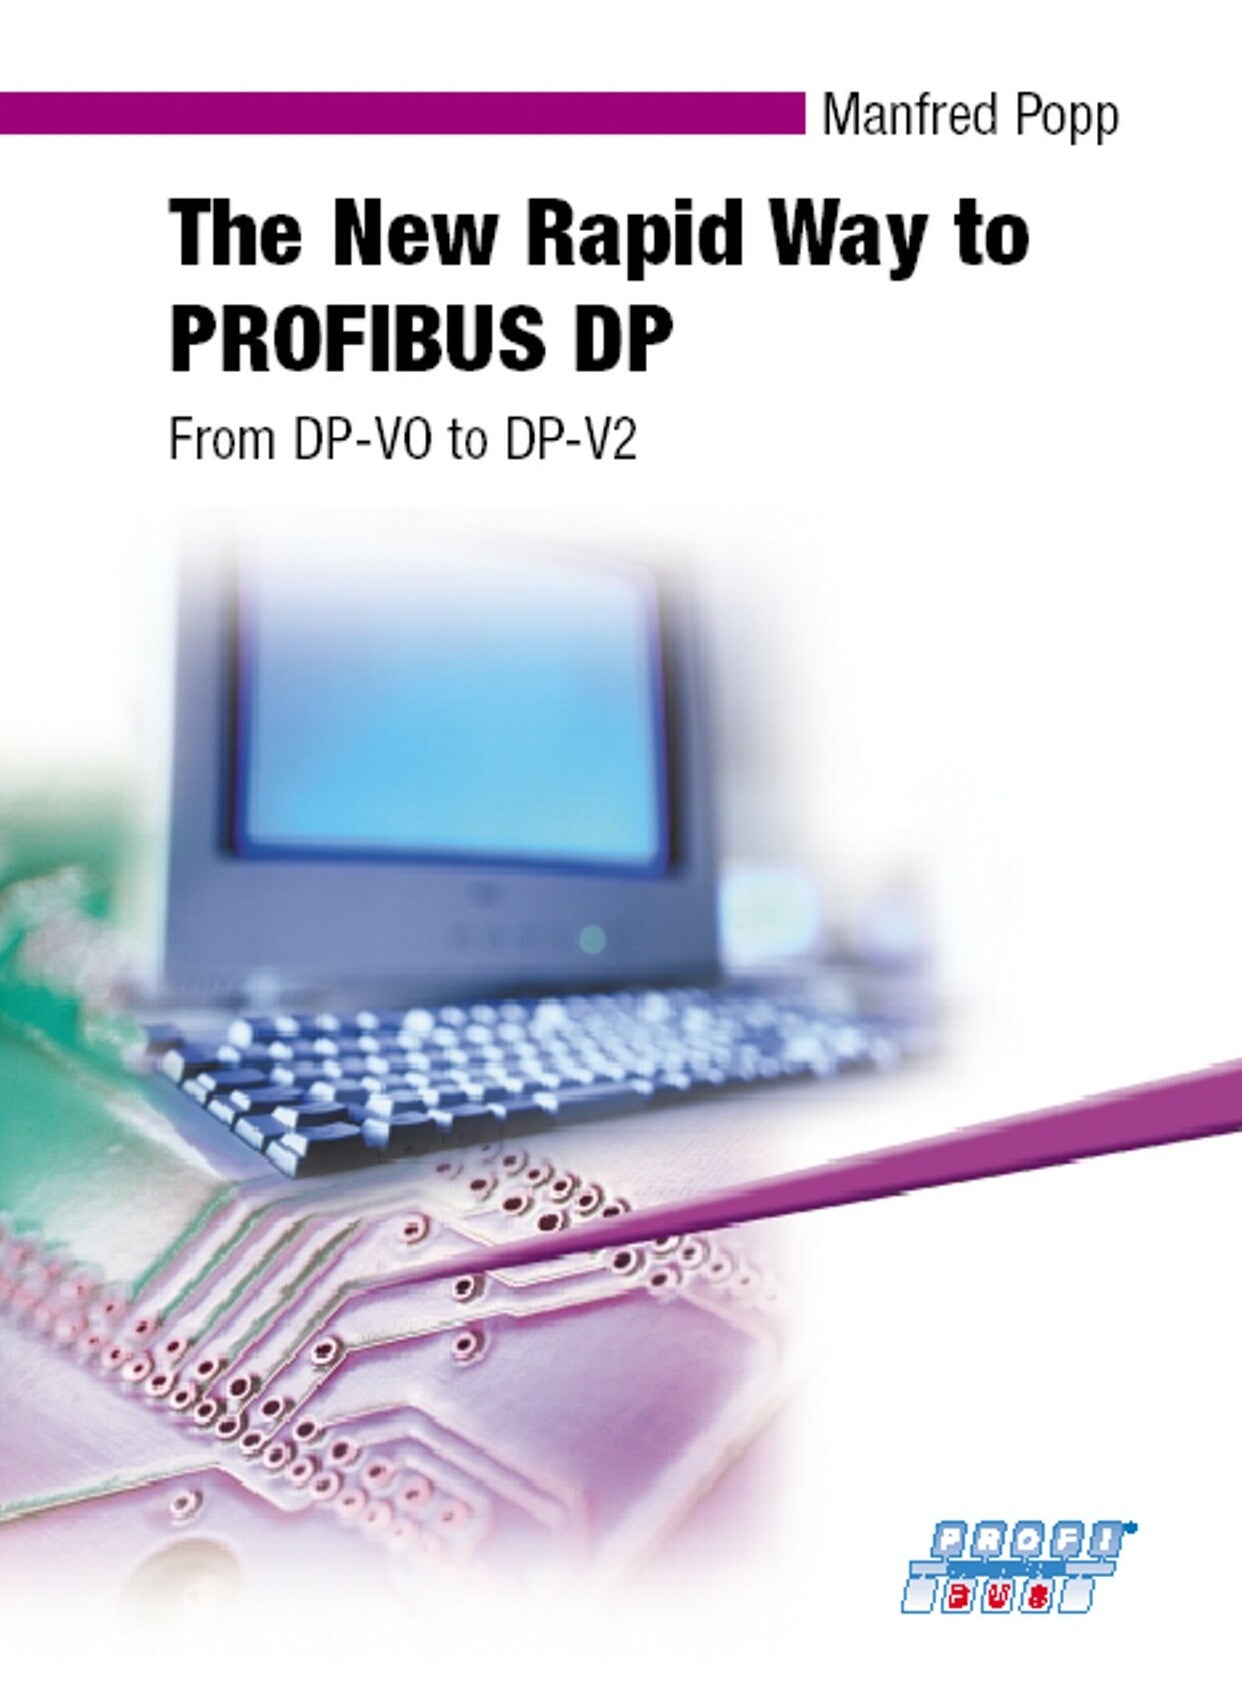 The New Rapid Way to PROFIBUS-DP  |  From DP-VO to DP-V2